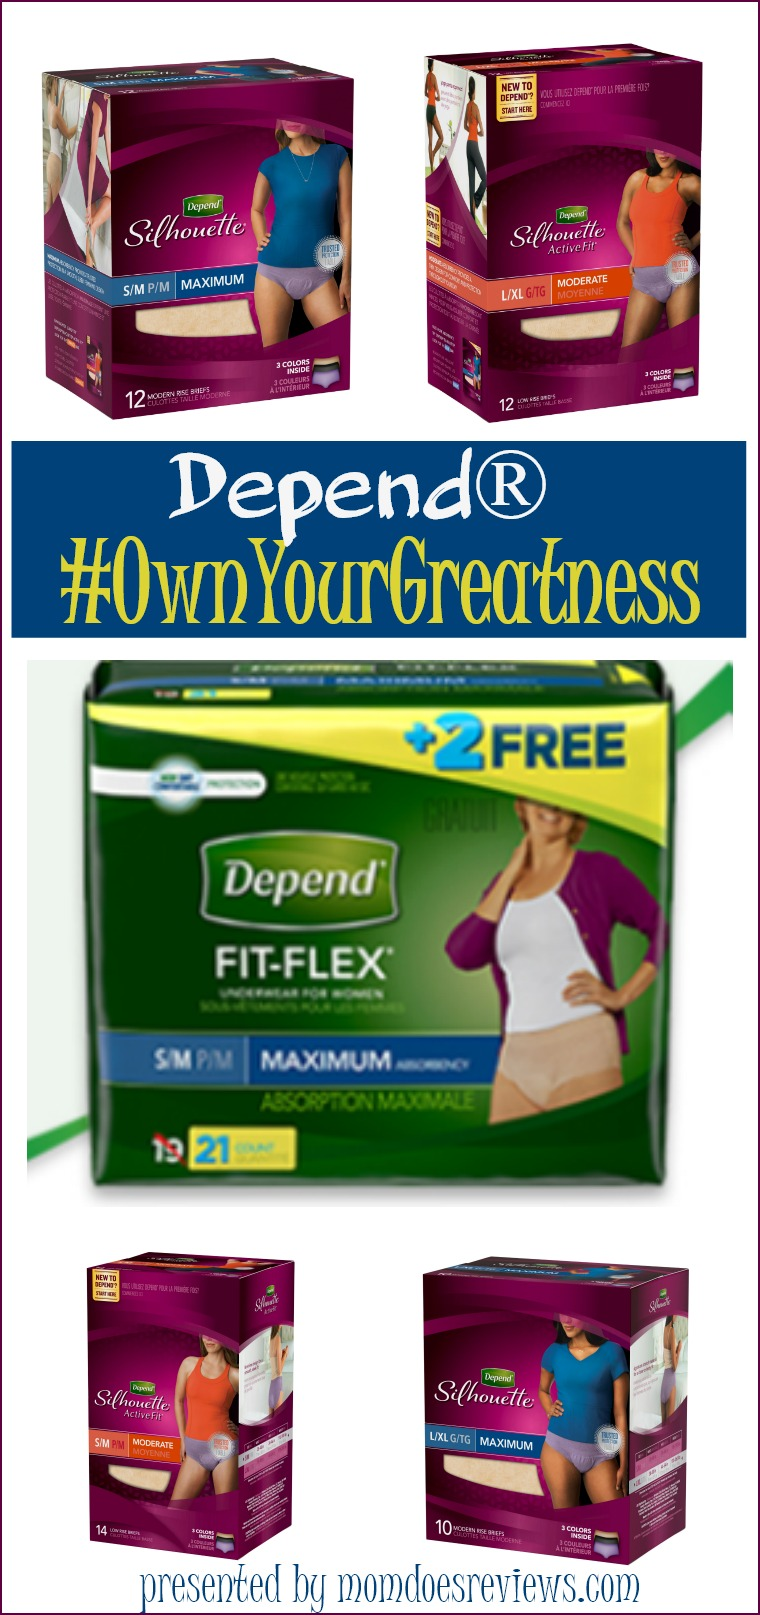 Depend® Live the Life you Love #OwnYourGreatness